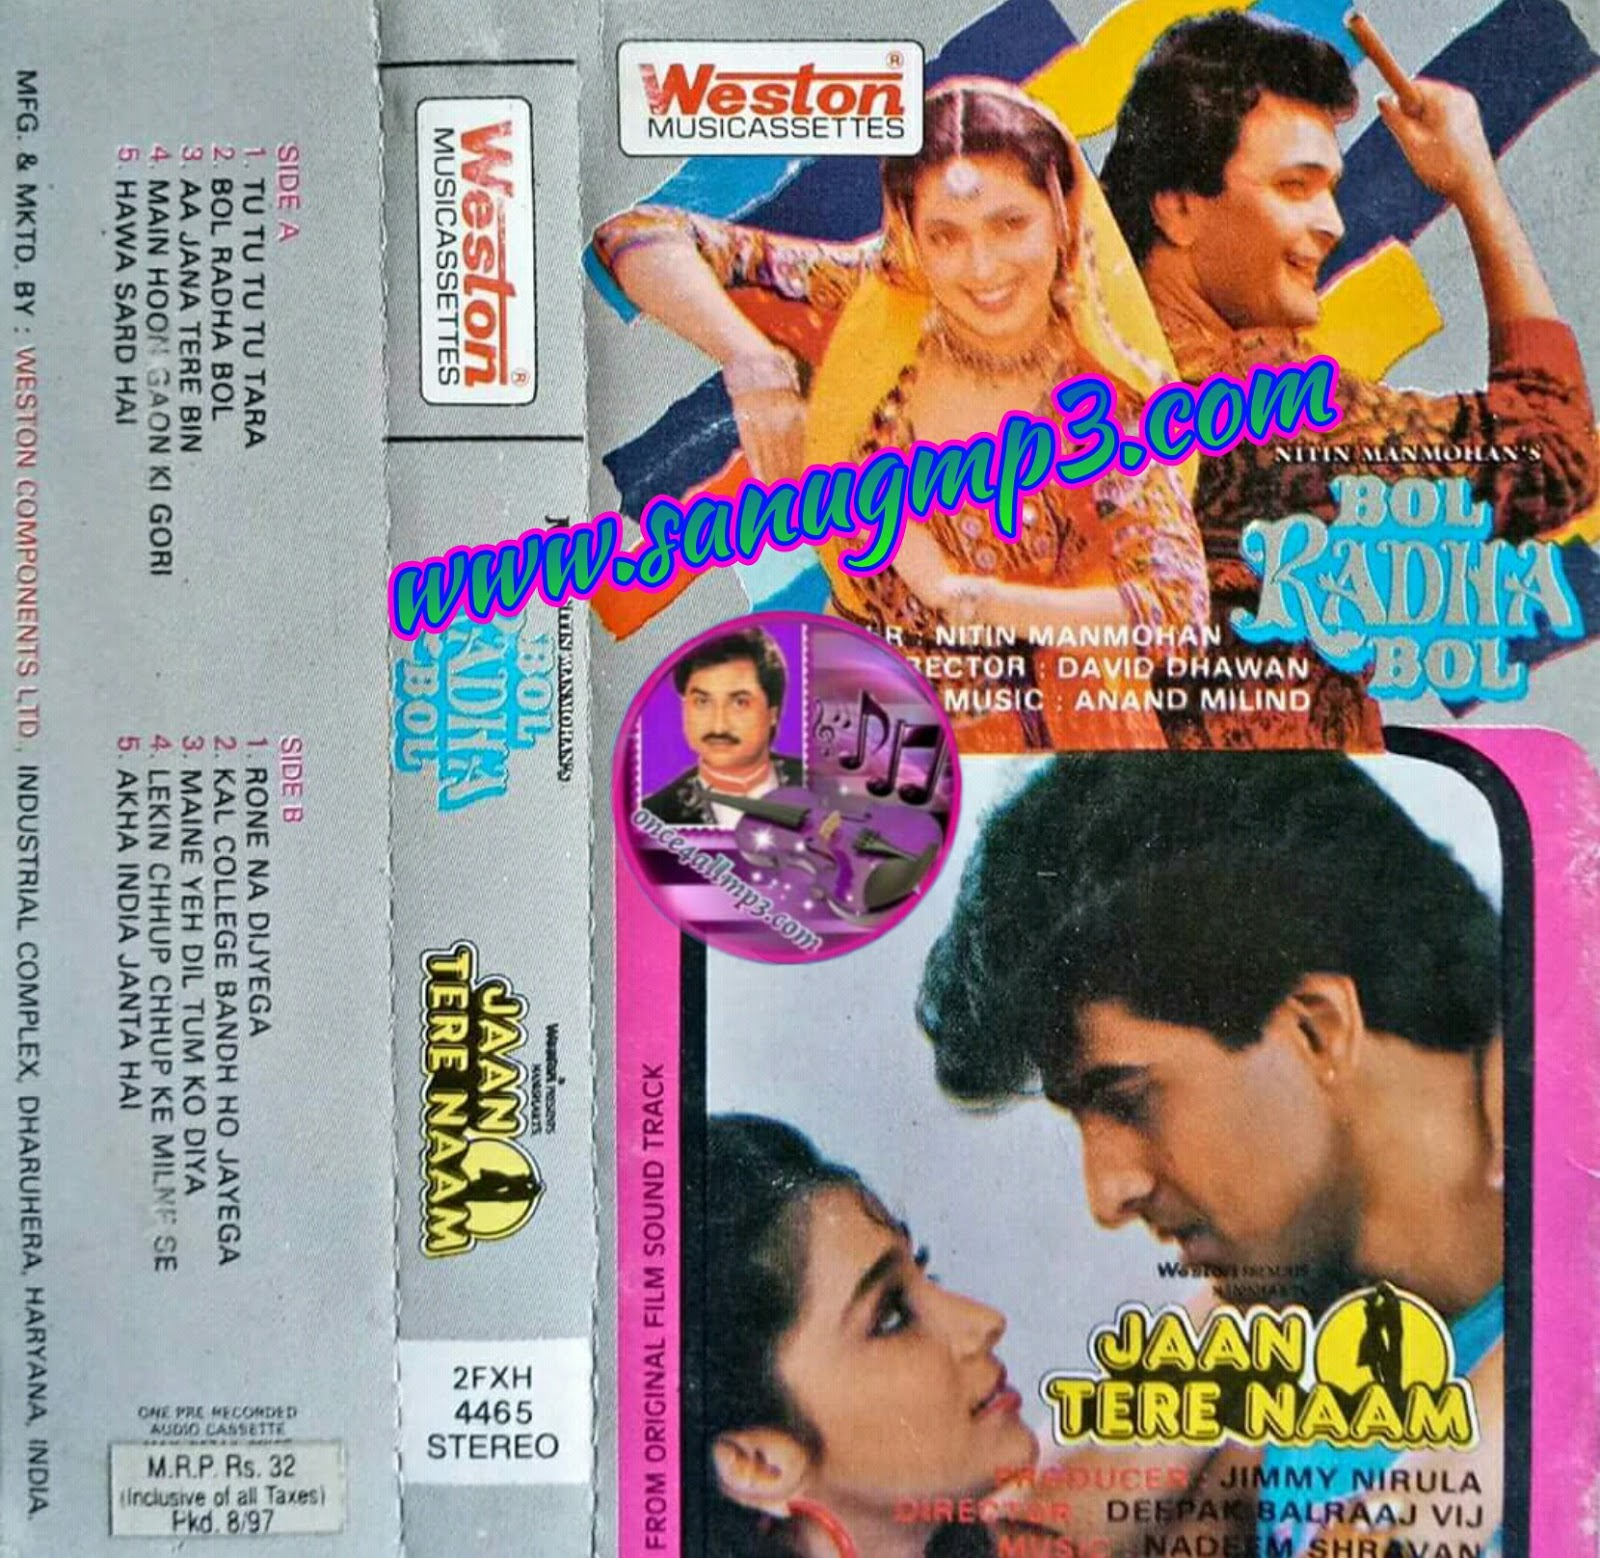 tamil movie 1990 to 2000 mp3 songs download